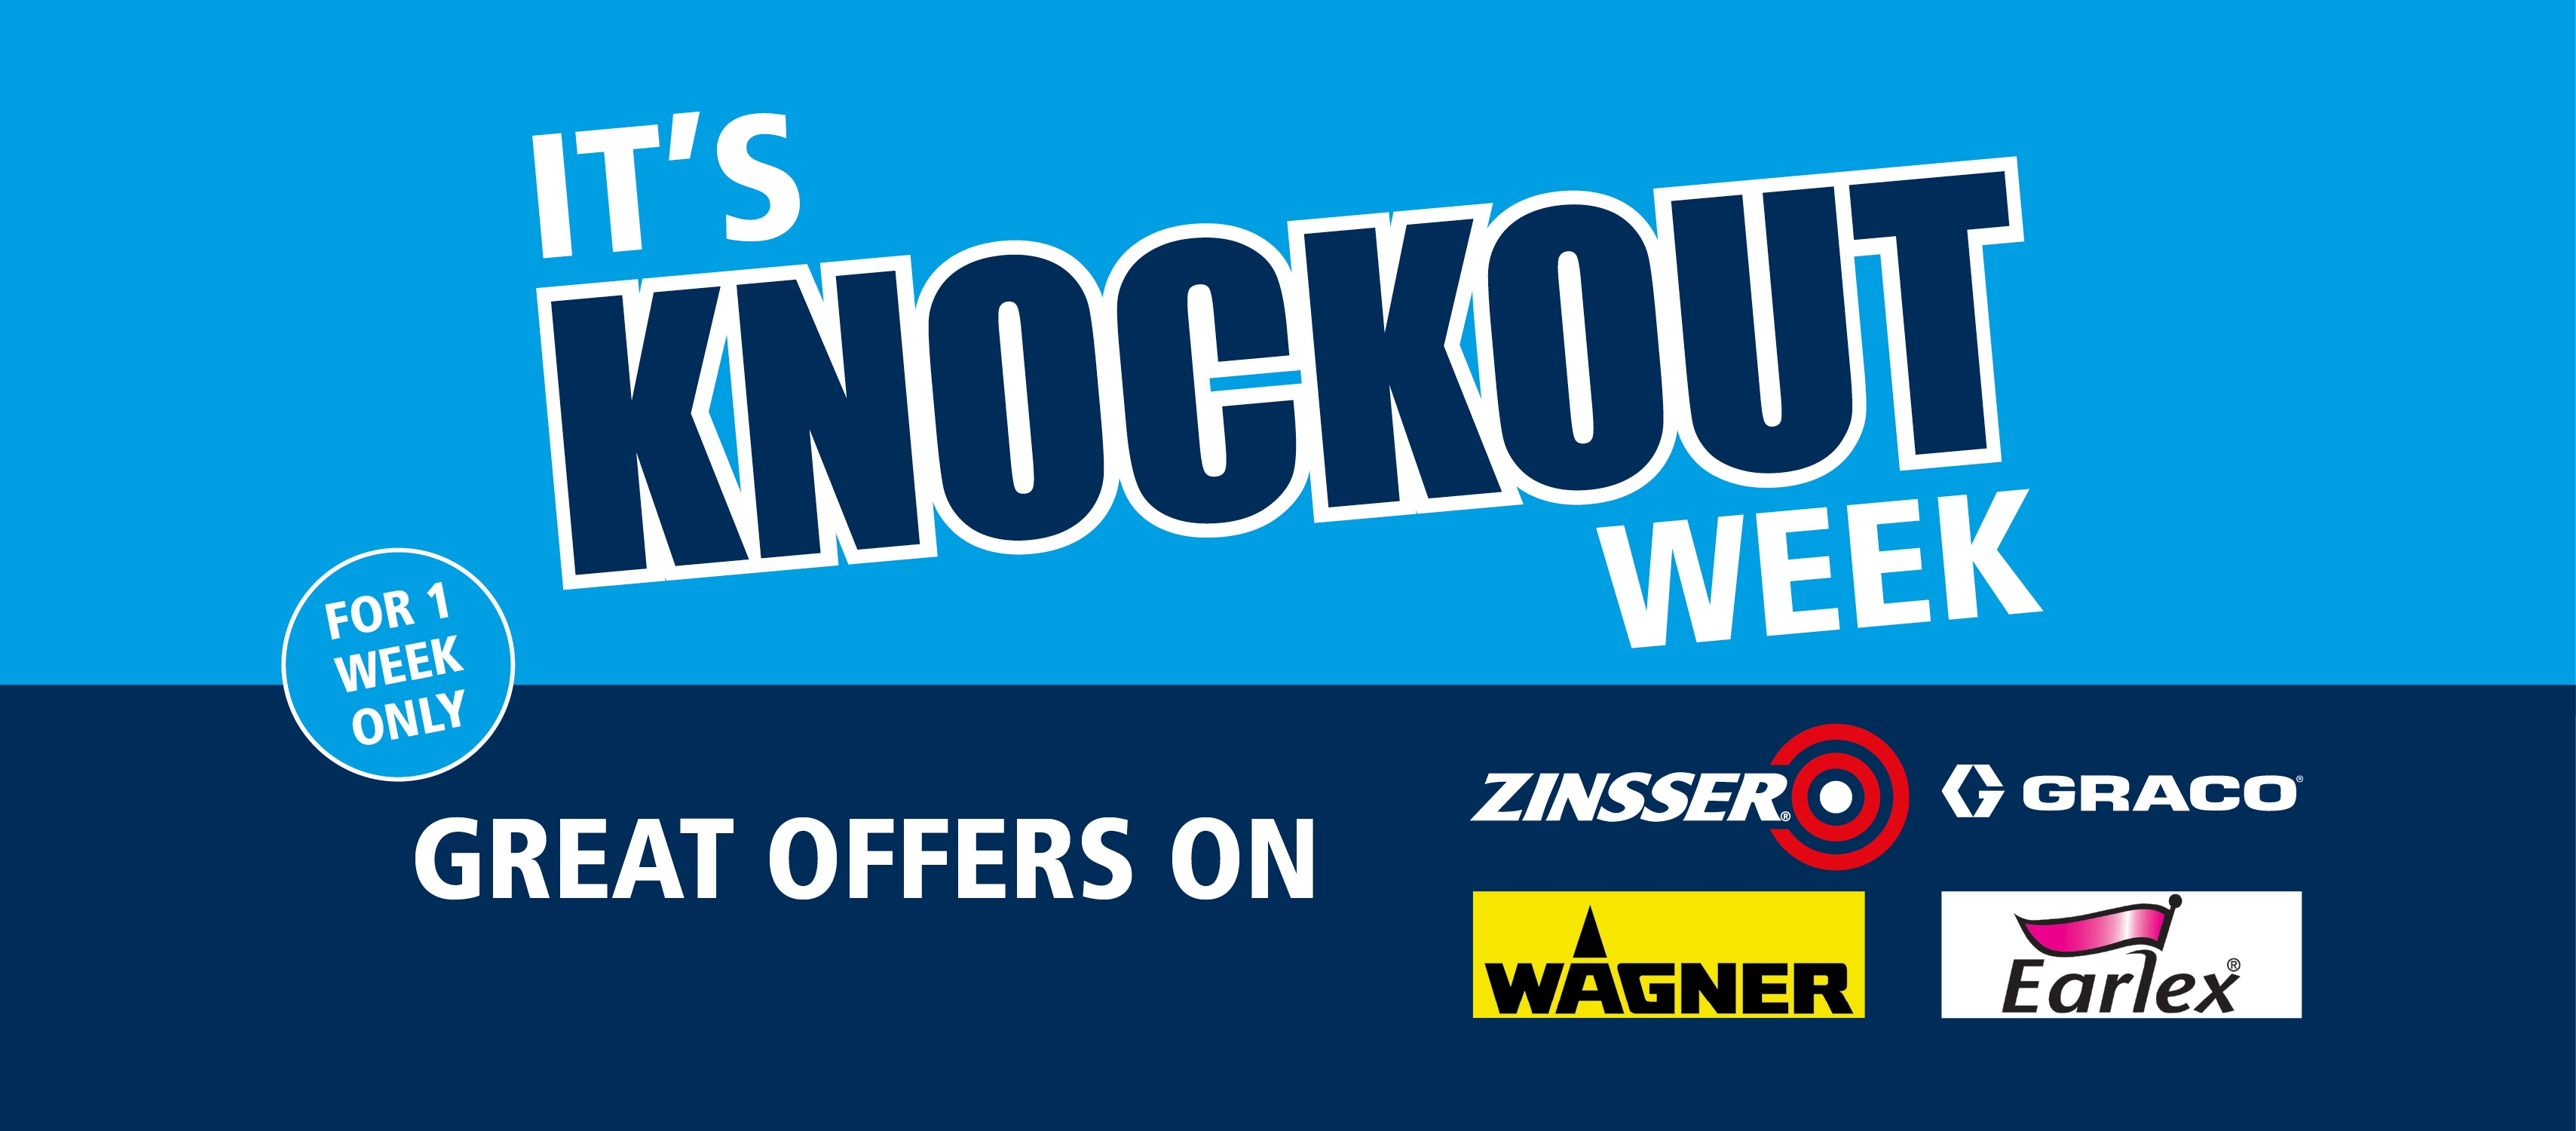 It's Knockout Week! Great offers on Zinsser and Spray Equipment